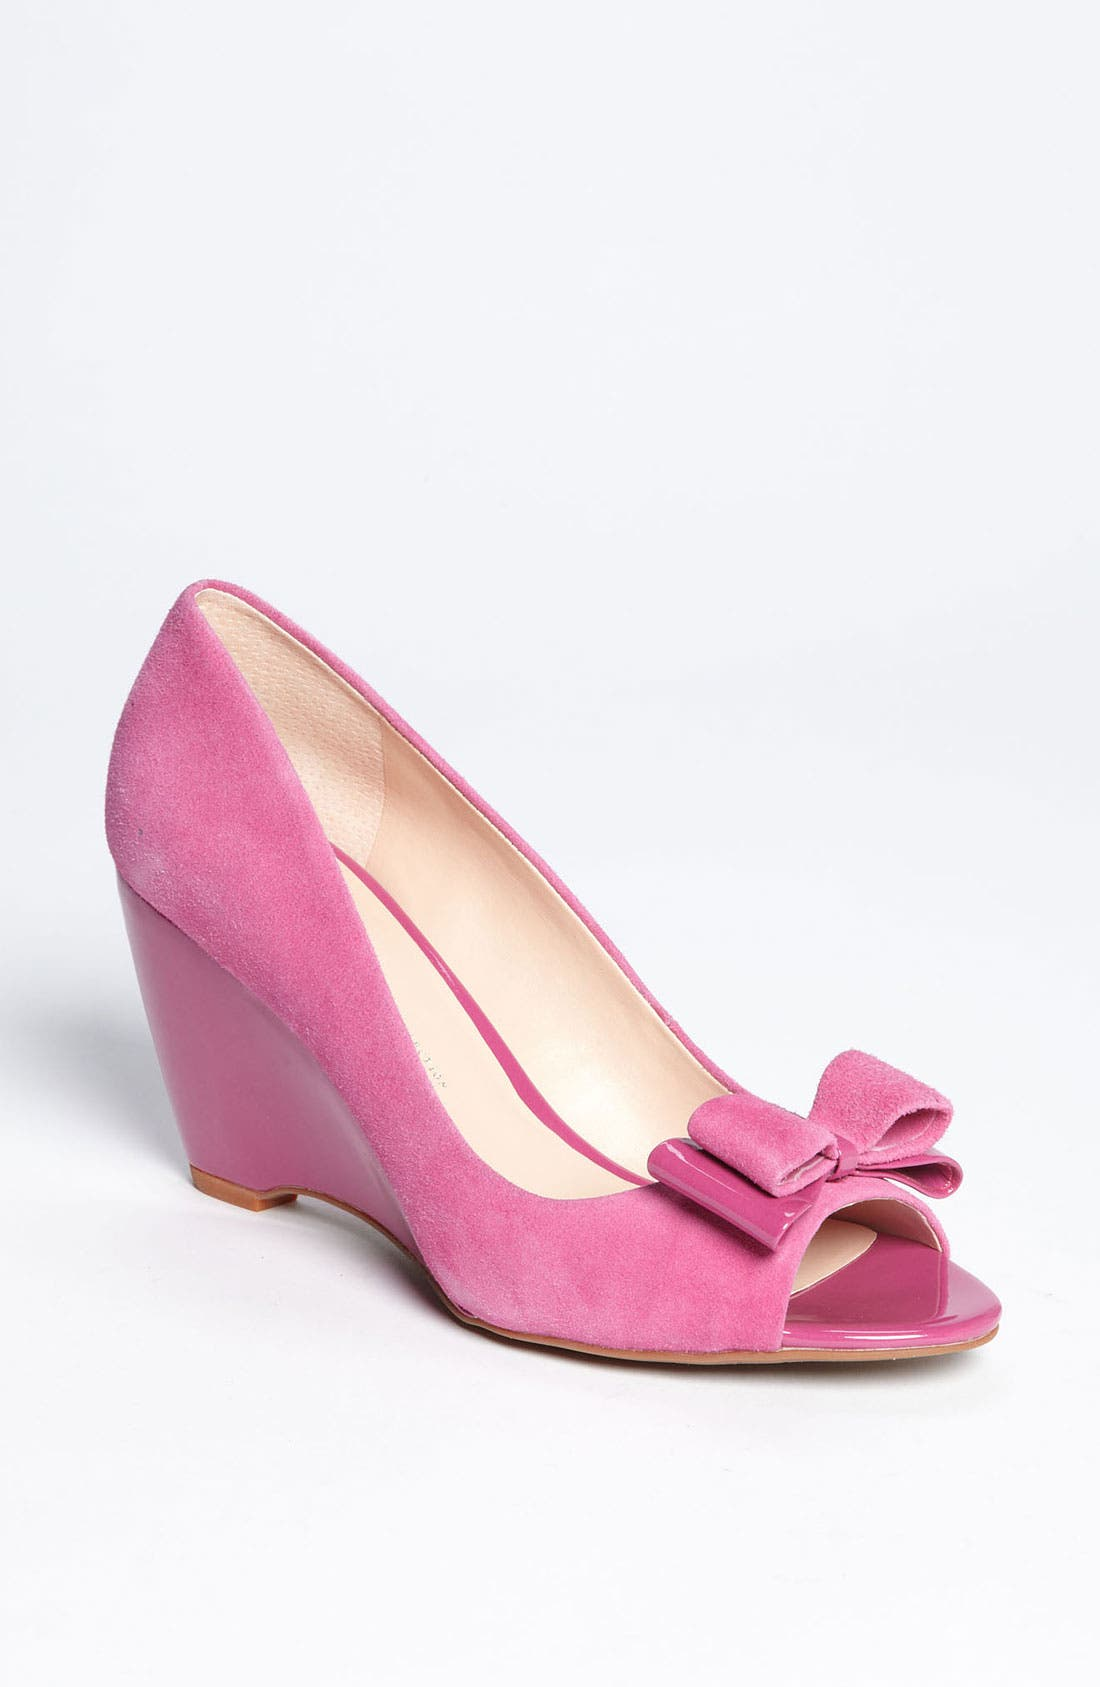 Main Image - Franco Sarto 'Hetty' Pump